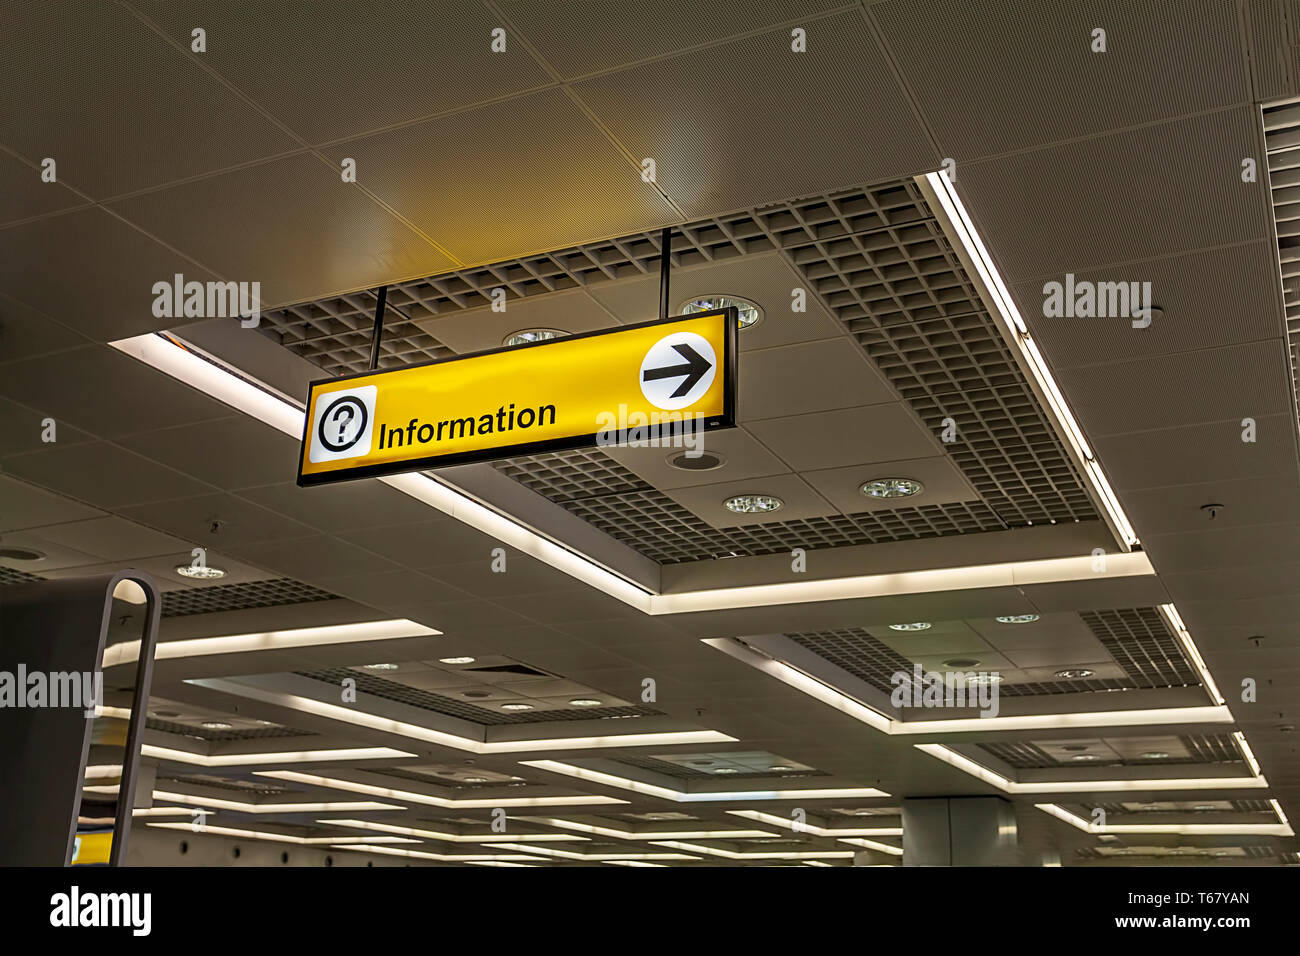 Indoor yellow bright invitation sign with question mark and road sign on airport and metro station - Stock Image